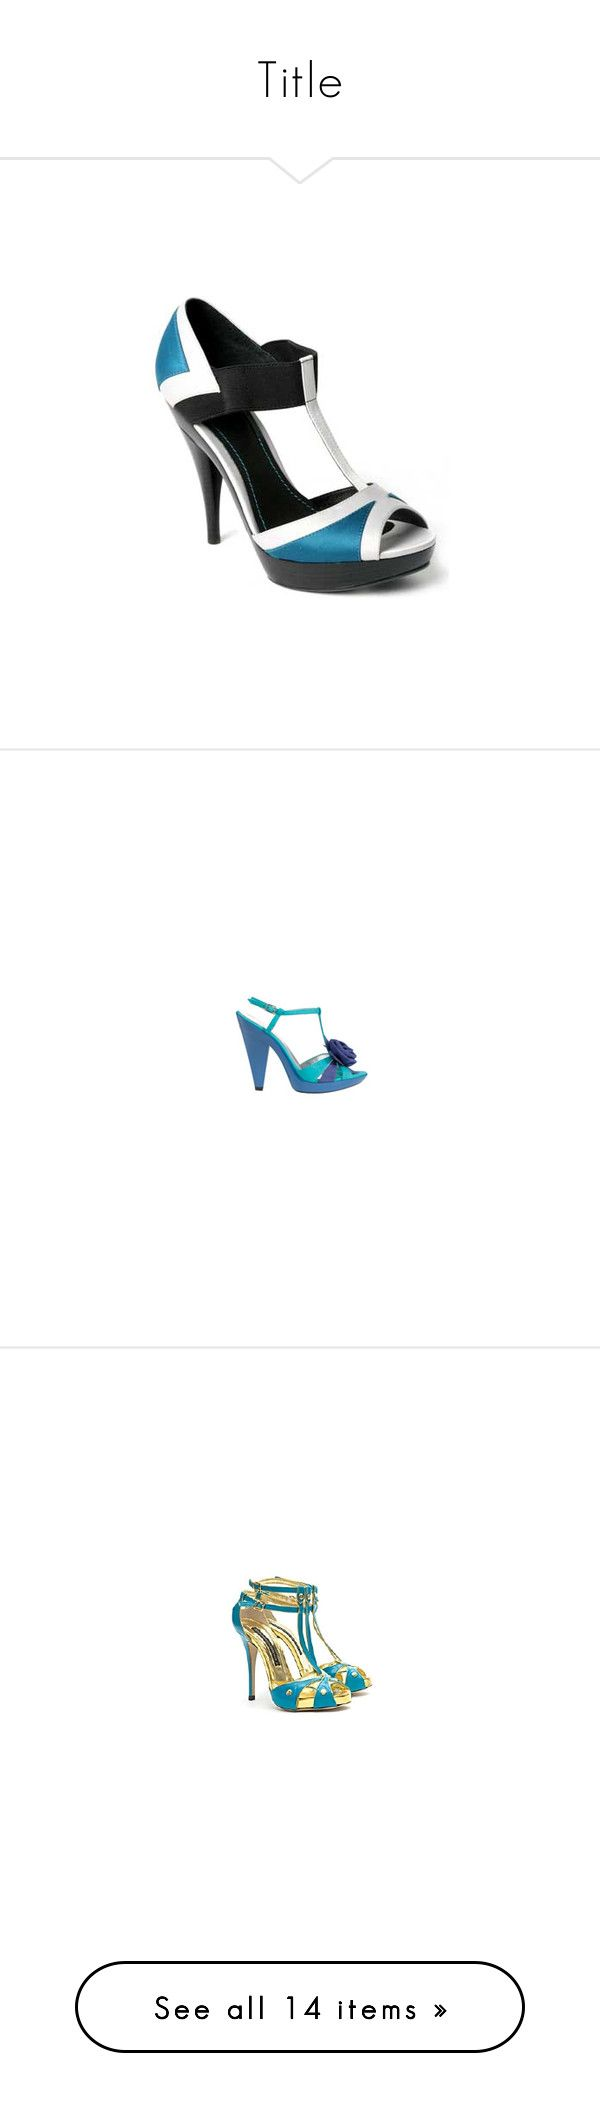 """Title"" by eastoceanqueen ❤ liked on Polyvore featuring shoes, sandals, heels, wooden heel shoes, debenhams shoes, wood sandals, wooden heel sandals, wooden shoes, high heels and t bar shoes"